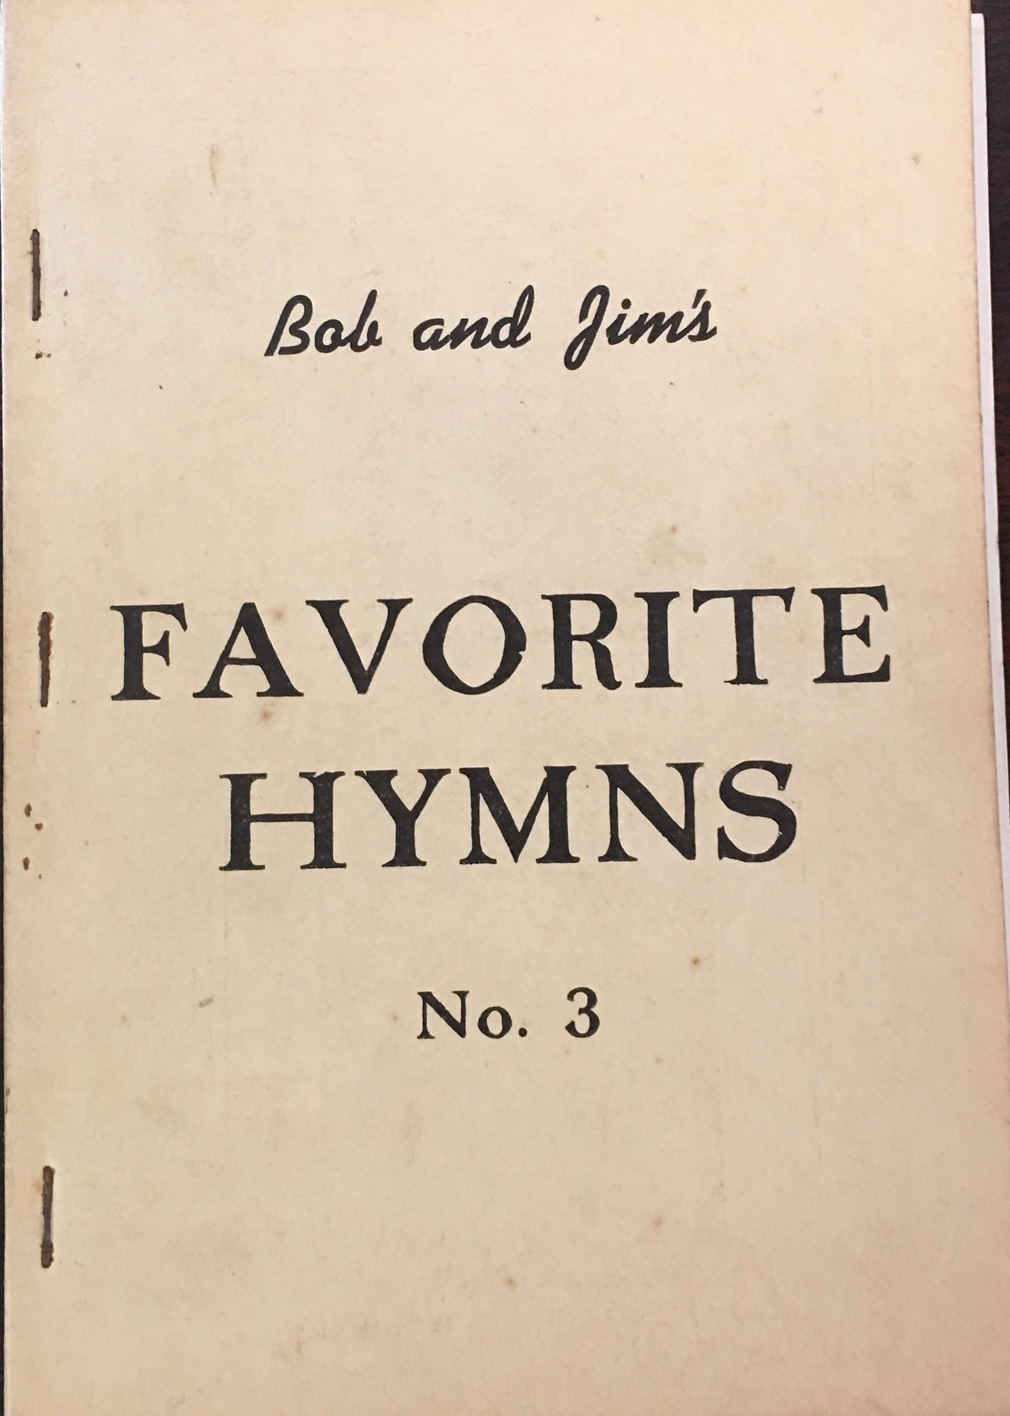 Image for Bob and Jim's Favorite Hymns No. 3